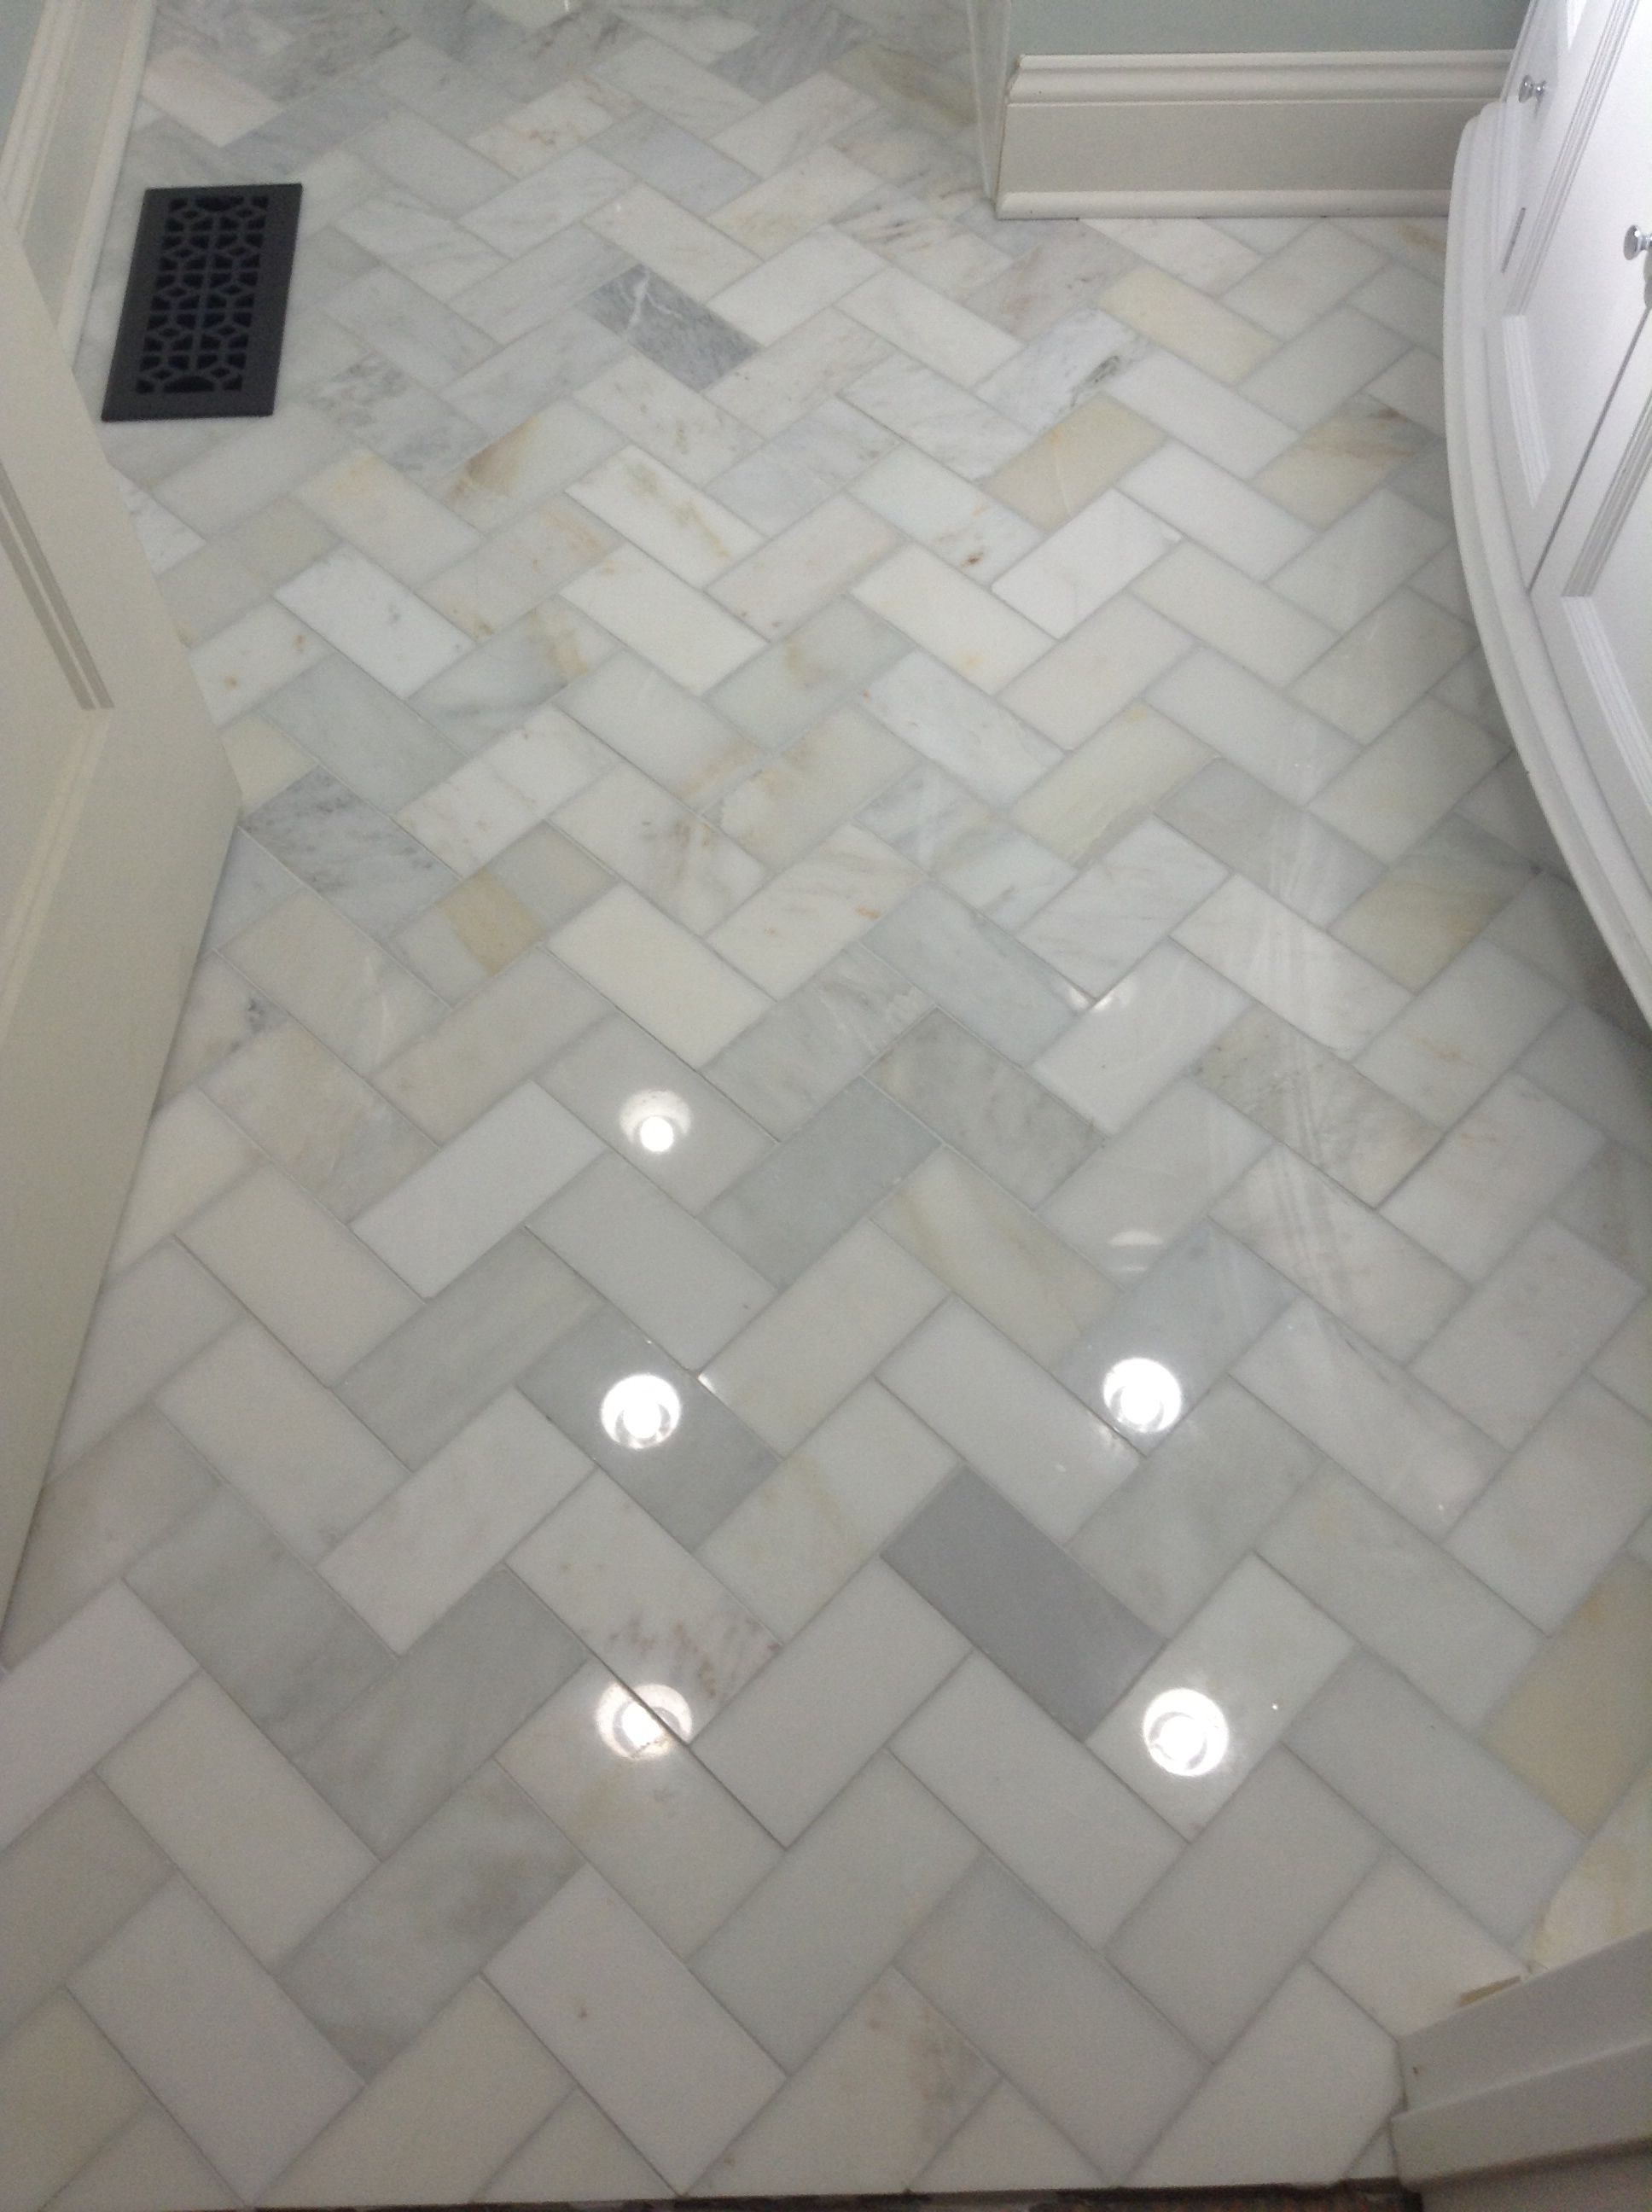 Herringbone Marble Bathroom Floor Home Decor Pinterest Marble Bathroom Floor Herringbone